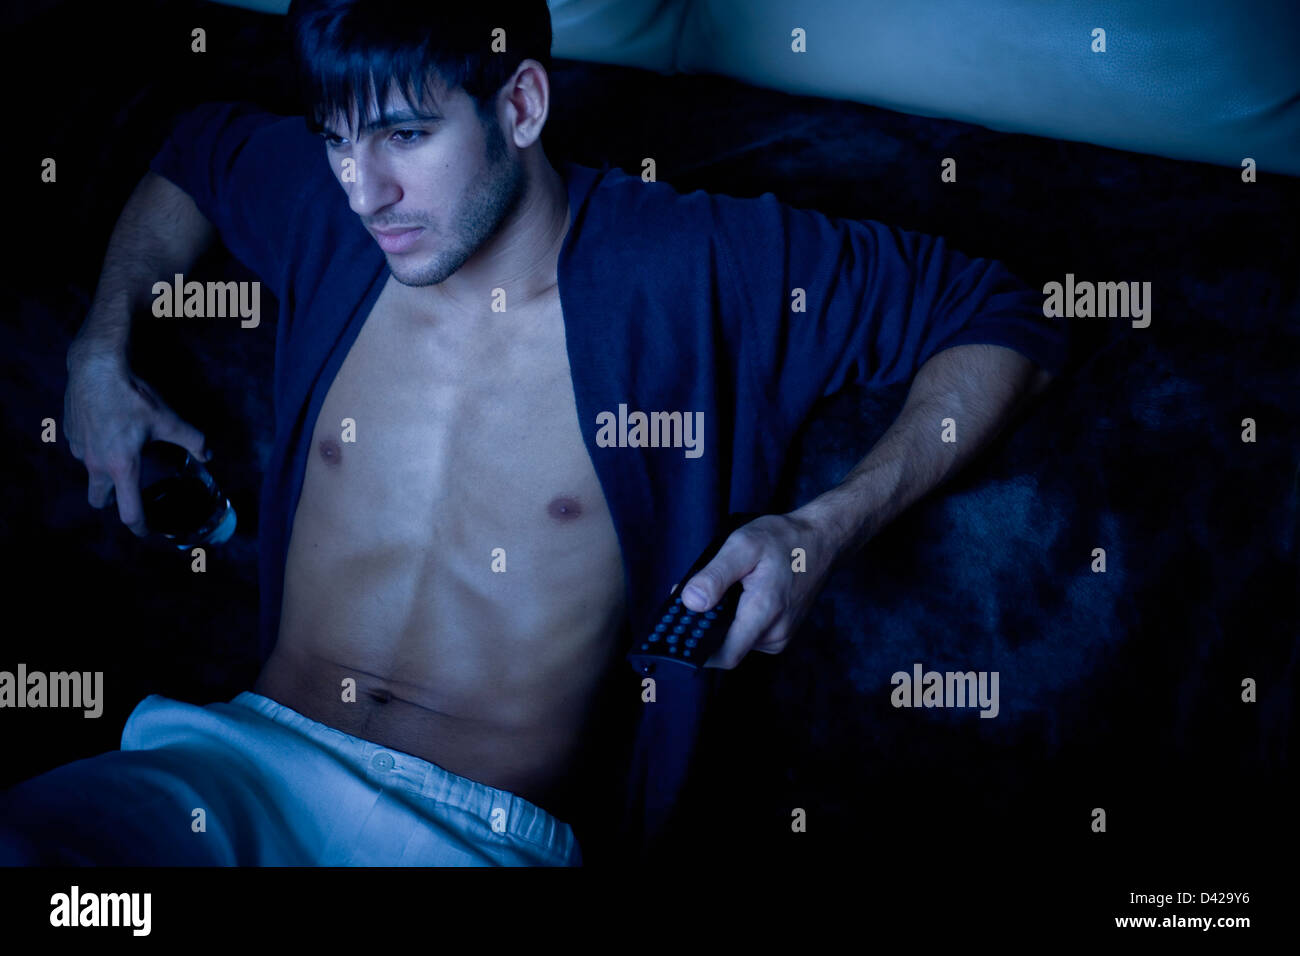 A man in his pajamas lit by the blue glow of tv, holding a remote control in one hand and a drink on the other. Stock Photo